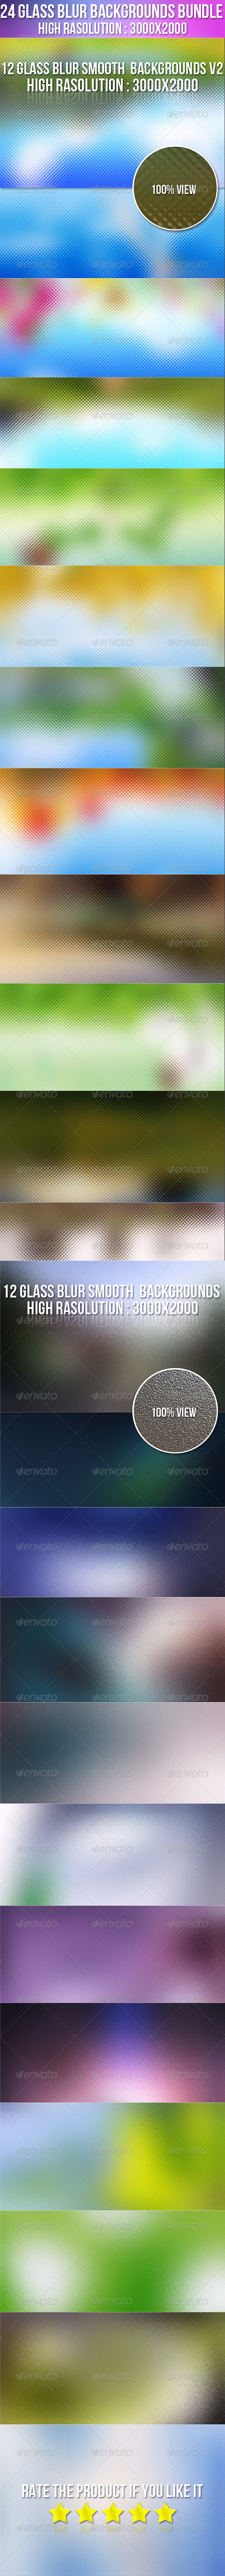 24 Glass Smooth Blur Background Bundle - Abstract Backgrounds